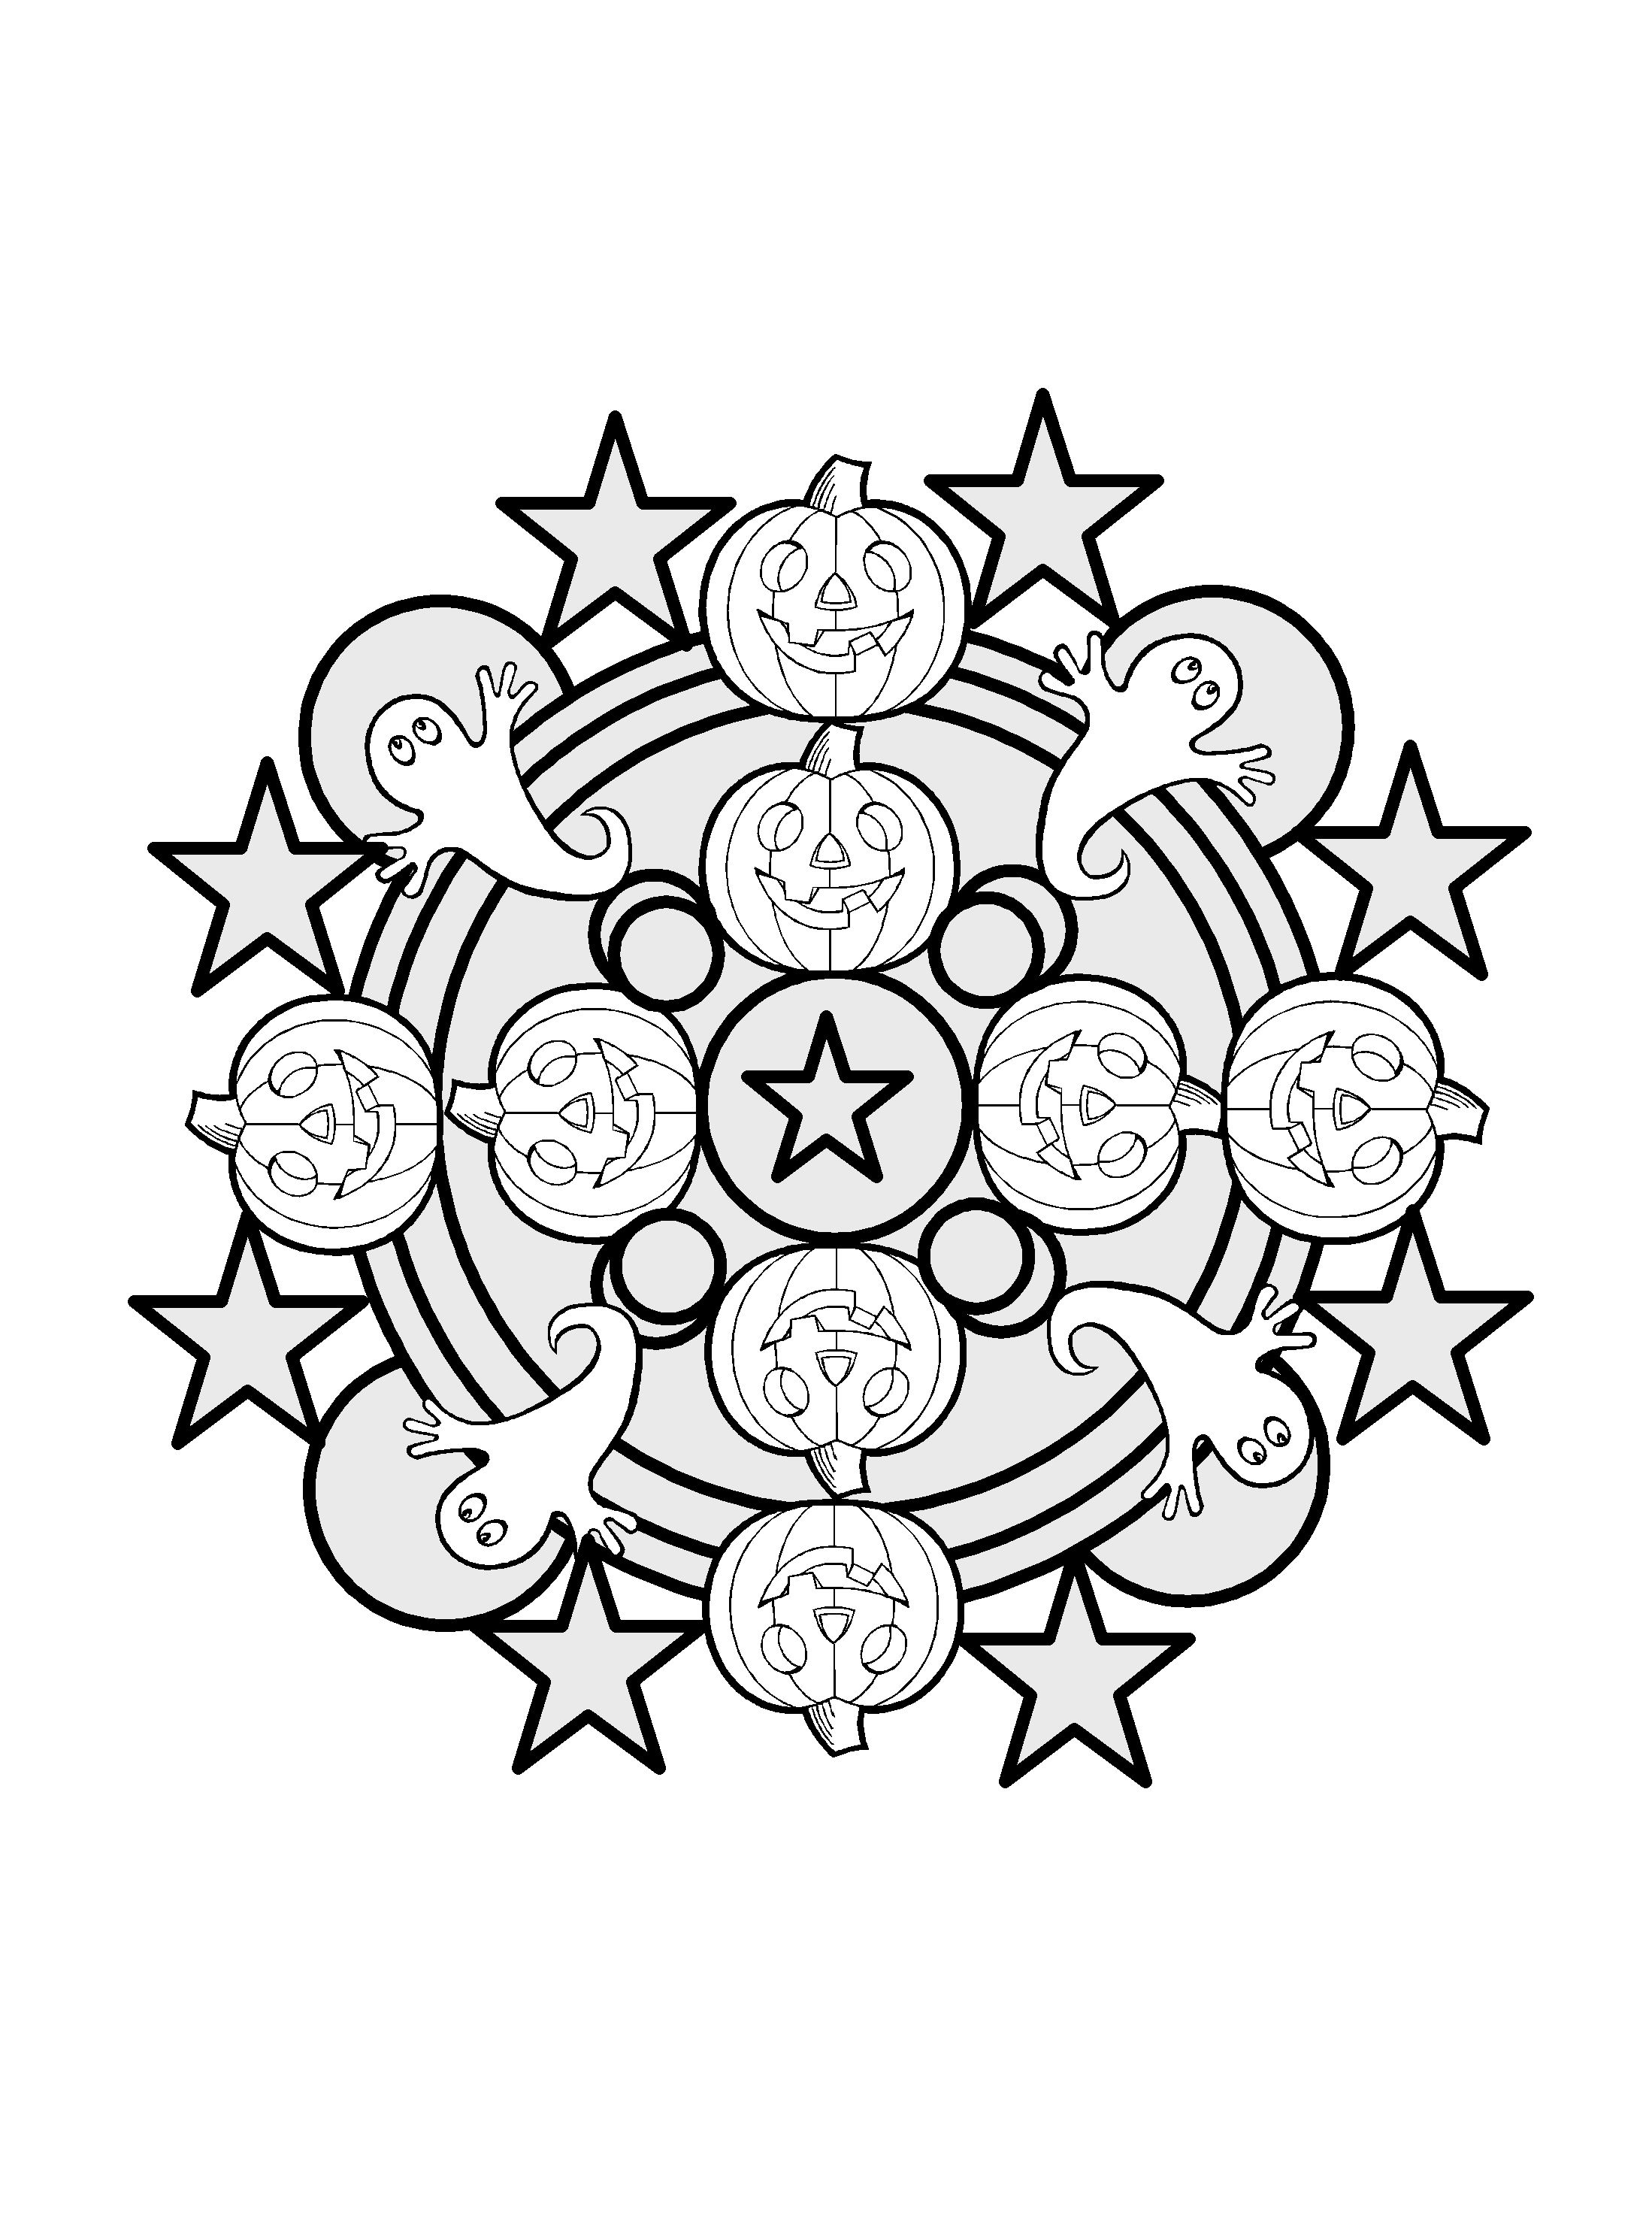 Mandala Coloring Page Crafty Ideas Embroidery Pinterest